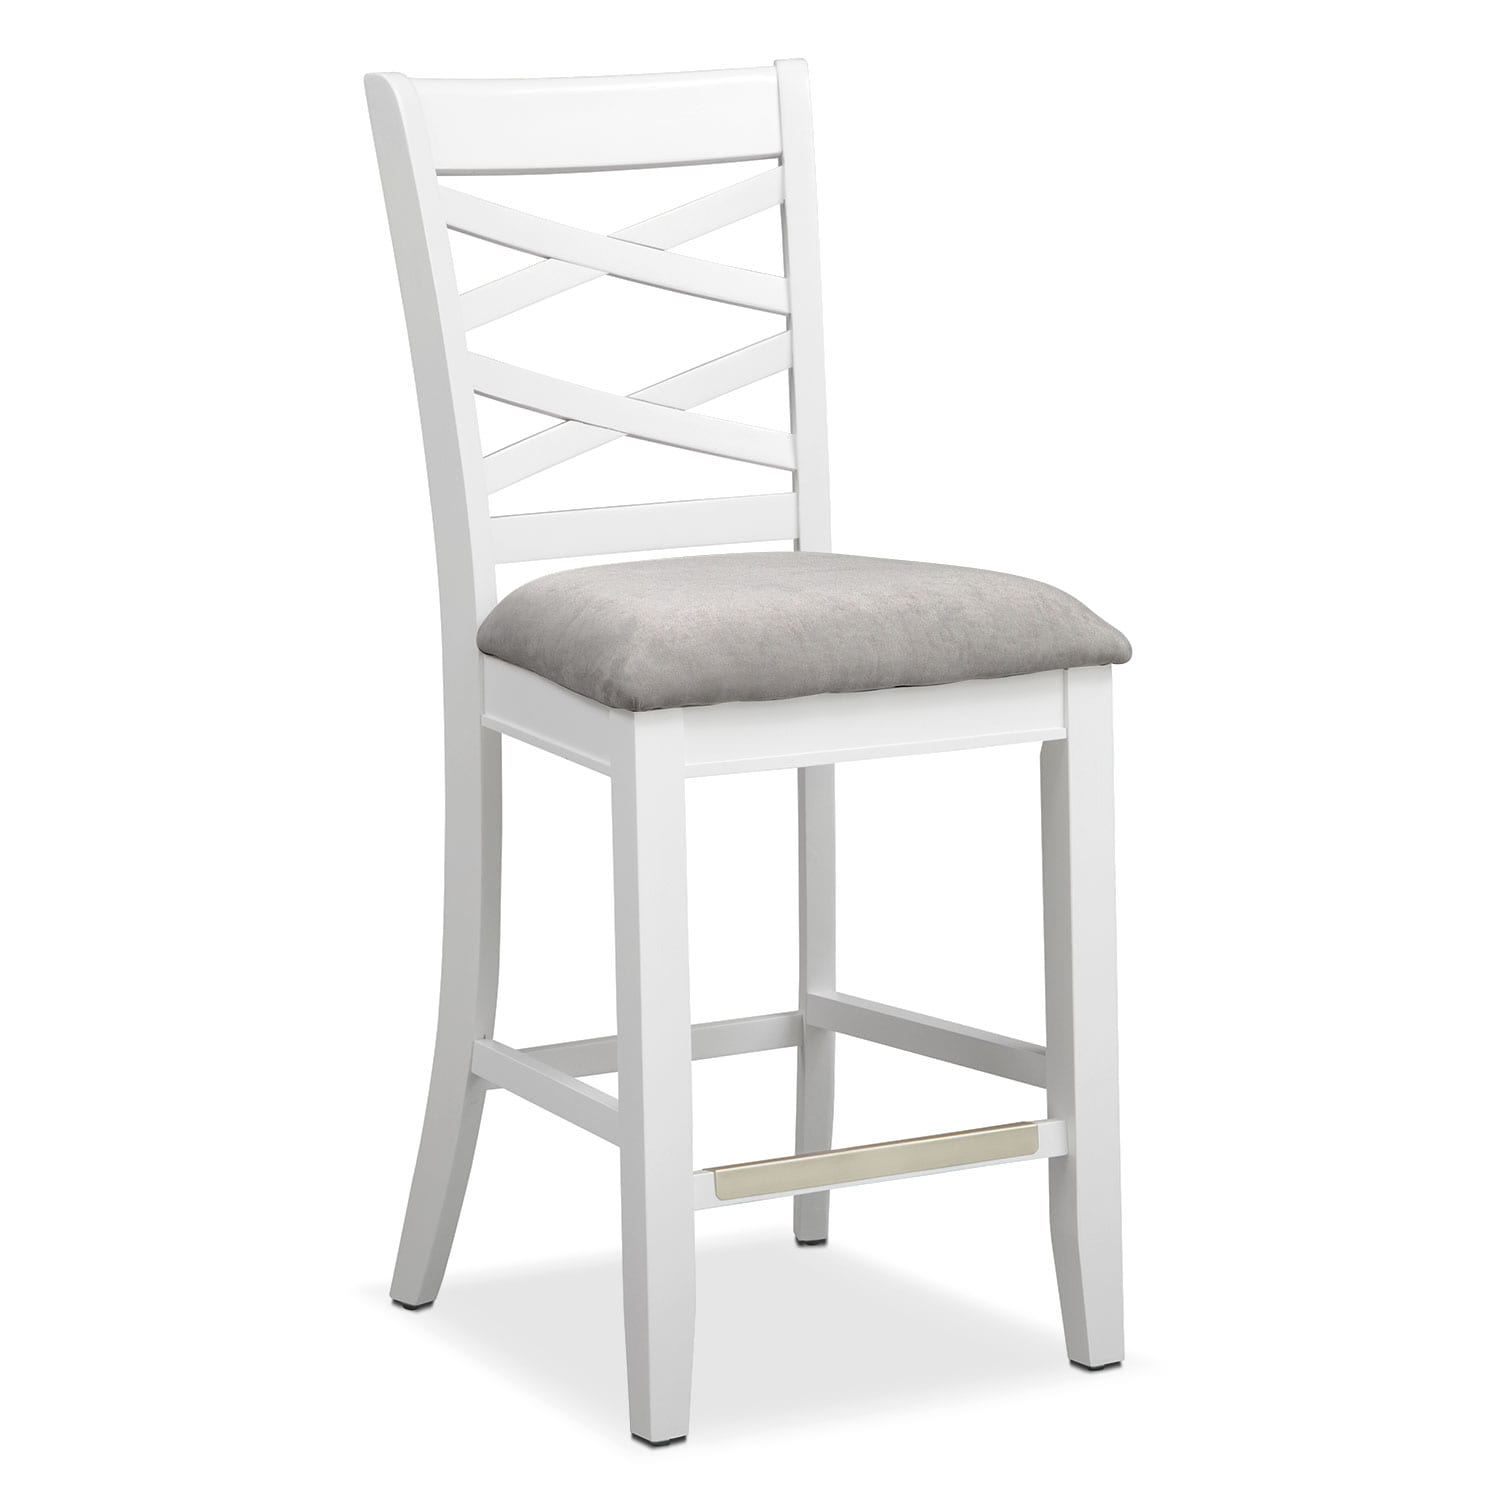 Americana White Counter-Height Stool